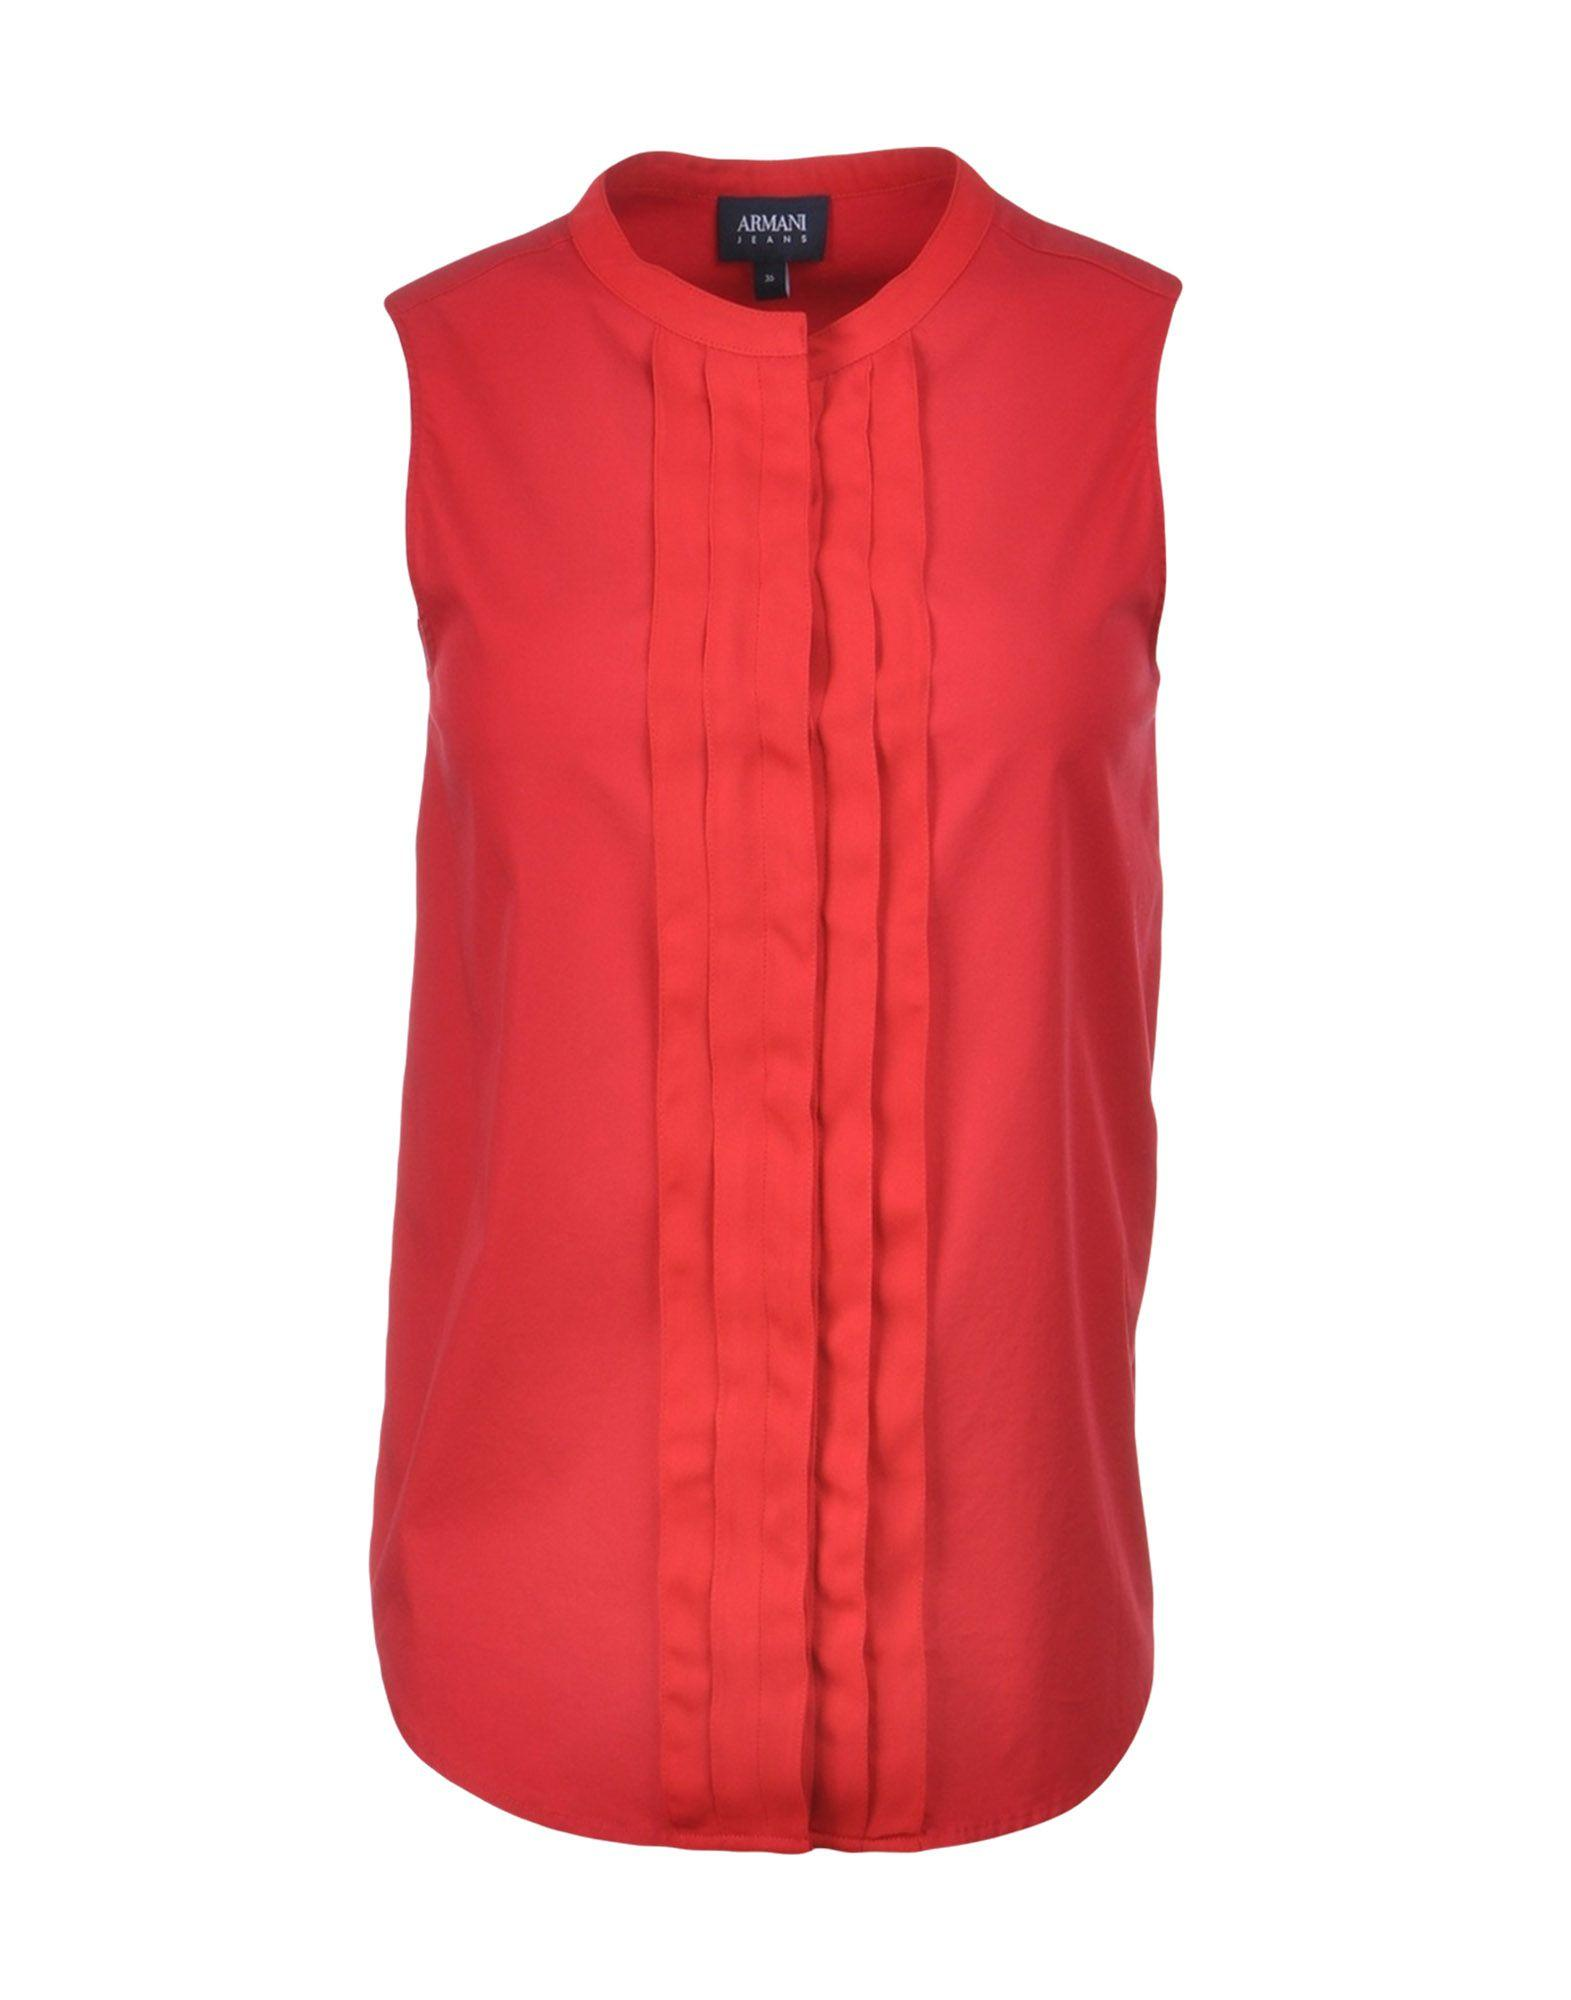 Armani Jeans Blouse In Red